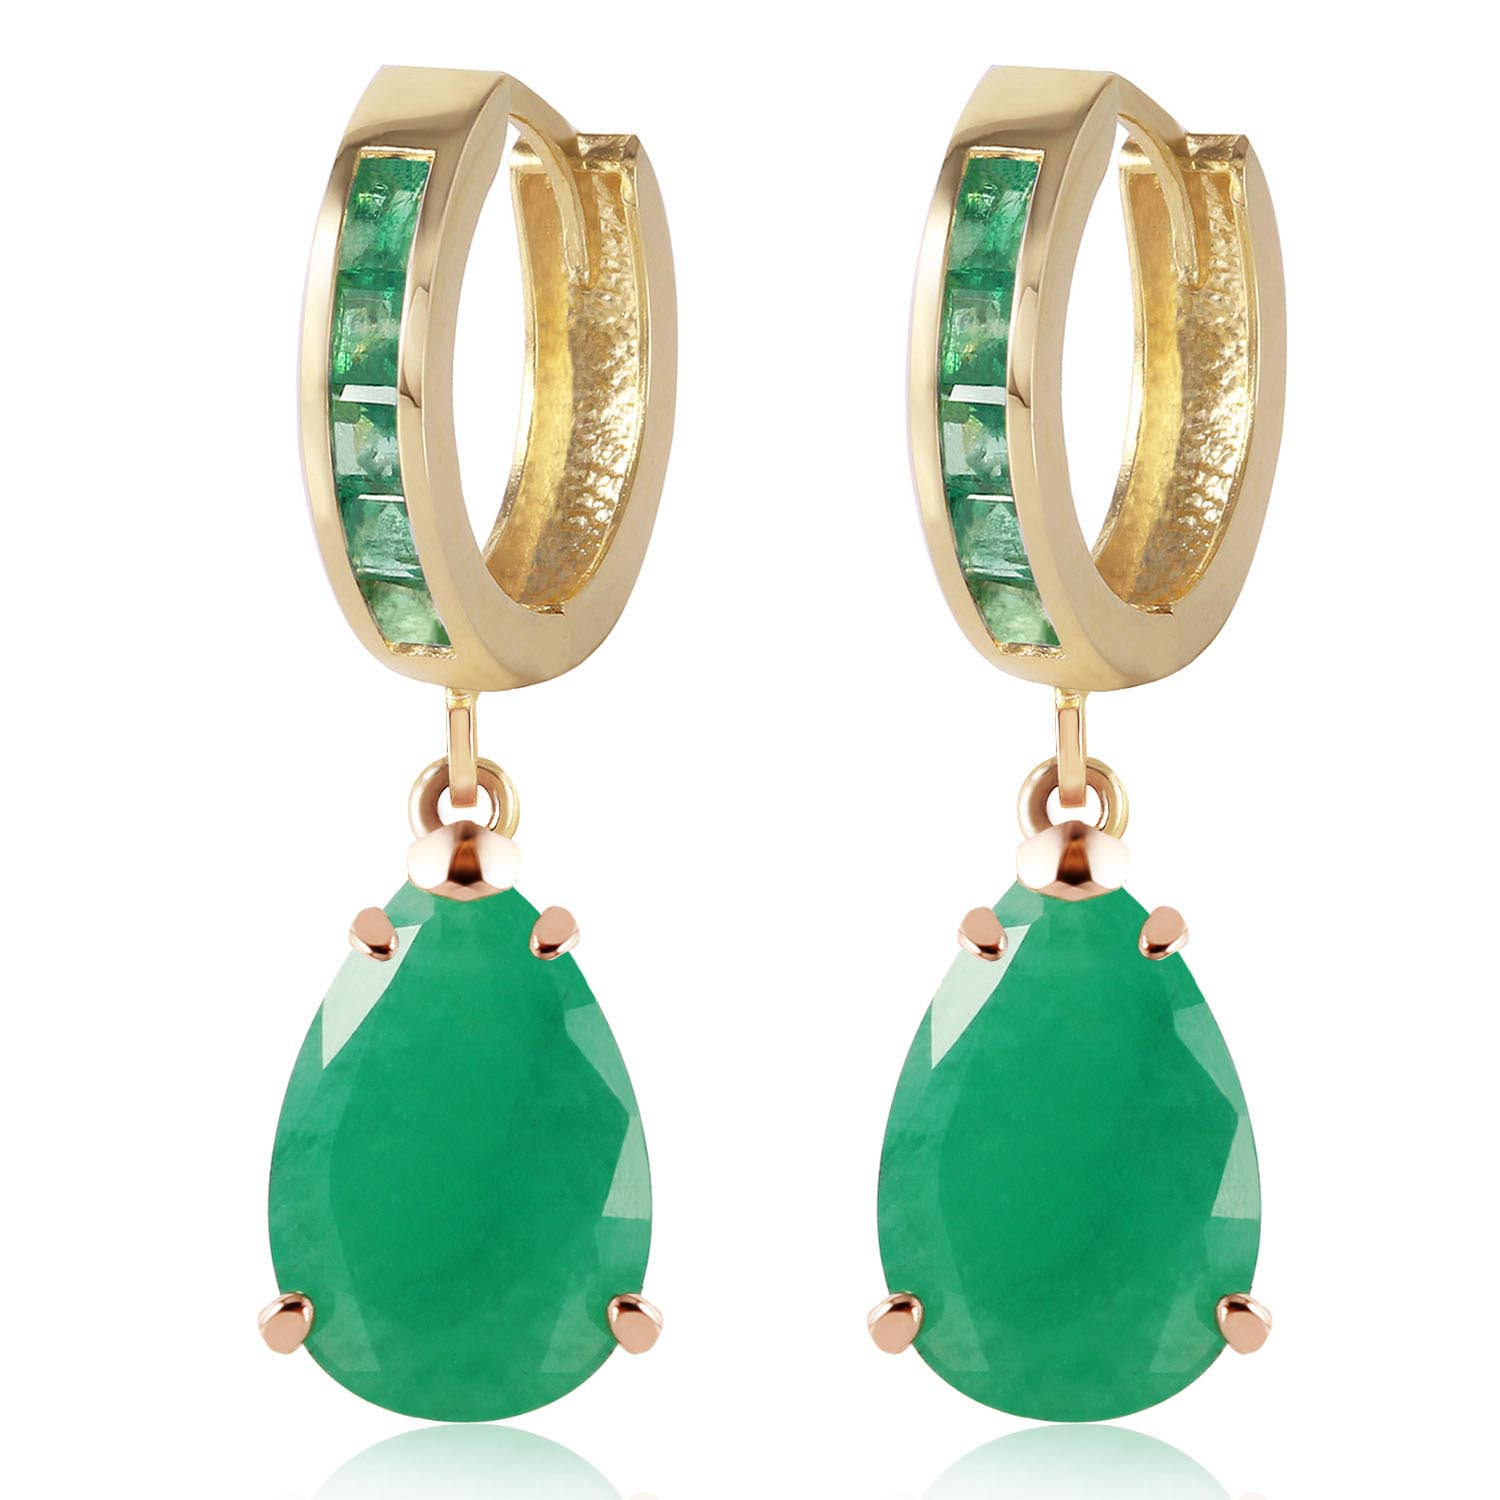 Emerald Droplet Huggie Earrings 1.3 ctw in 9ct Gold